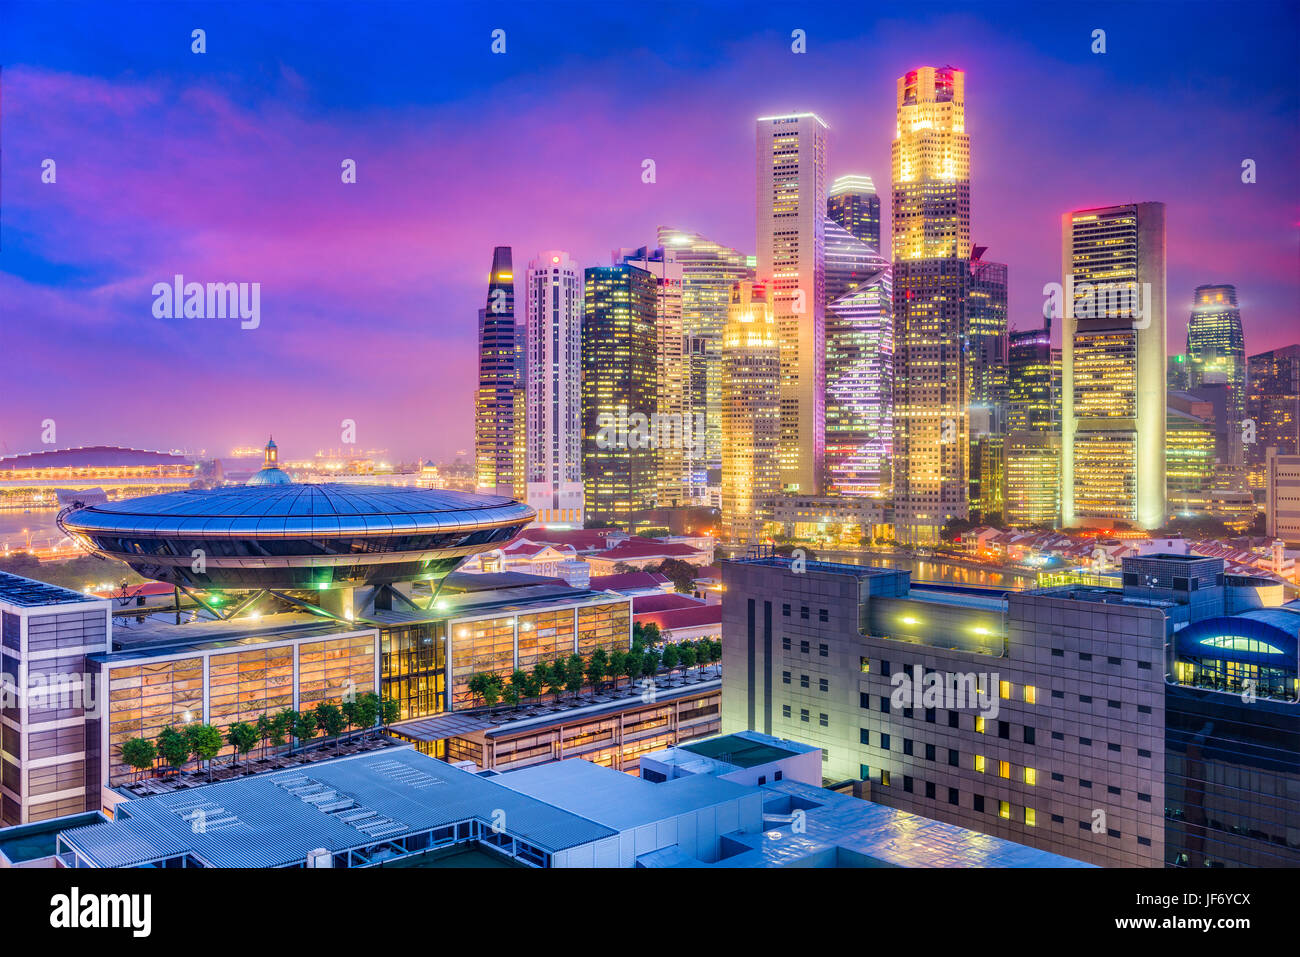 Singapore downtown skyline with the Supreme Court Building. Stock Photo